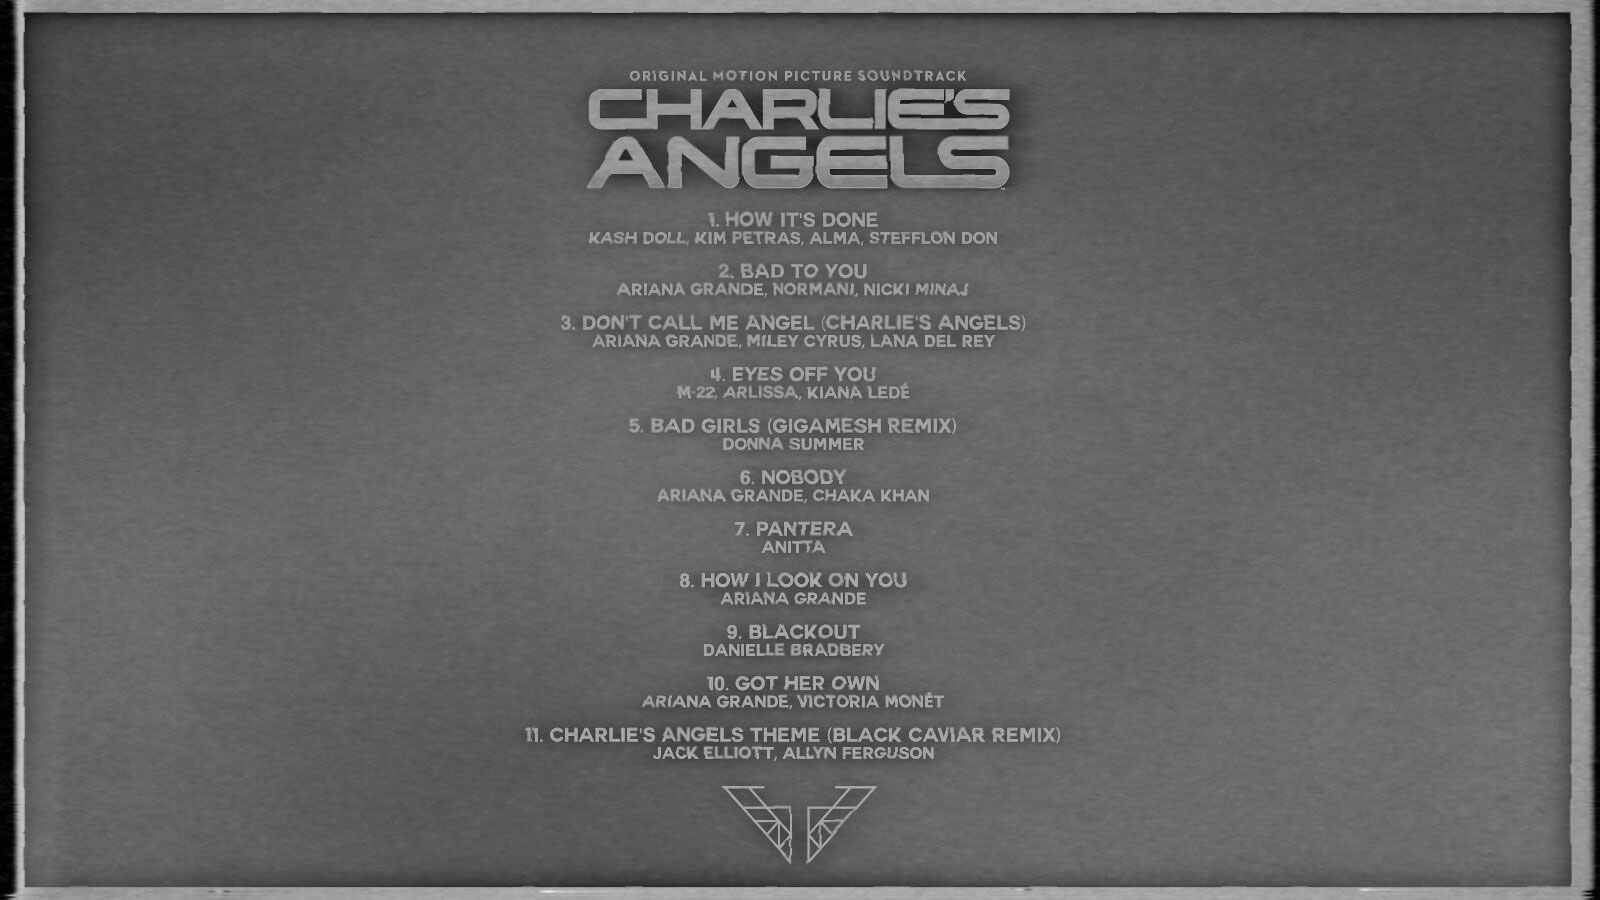 Charlie's Angels Soundtracks - Ariana Grande